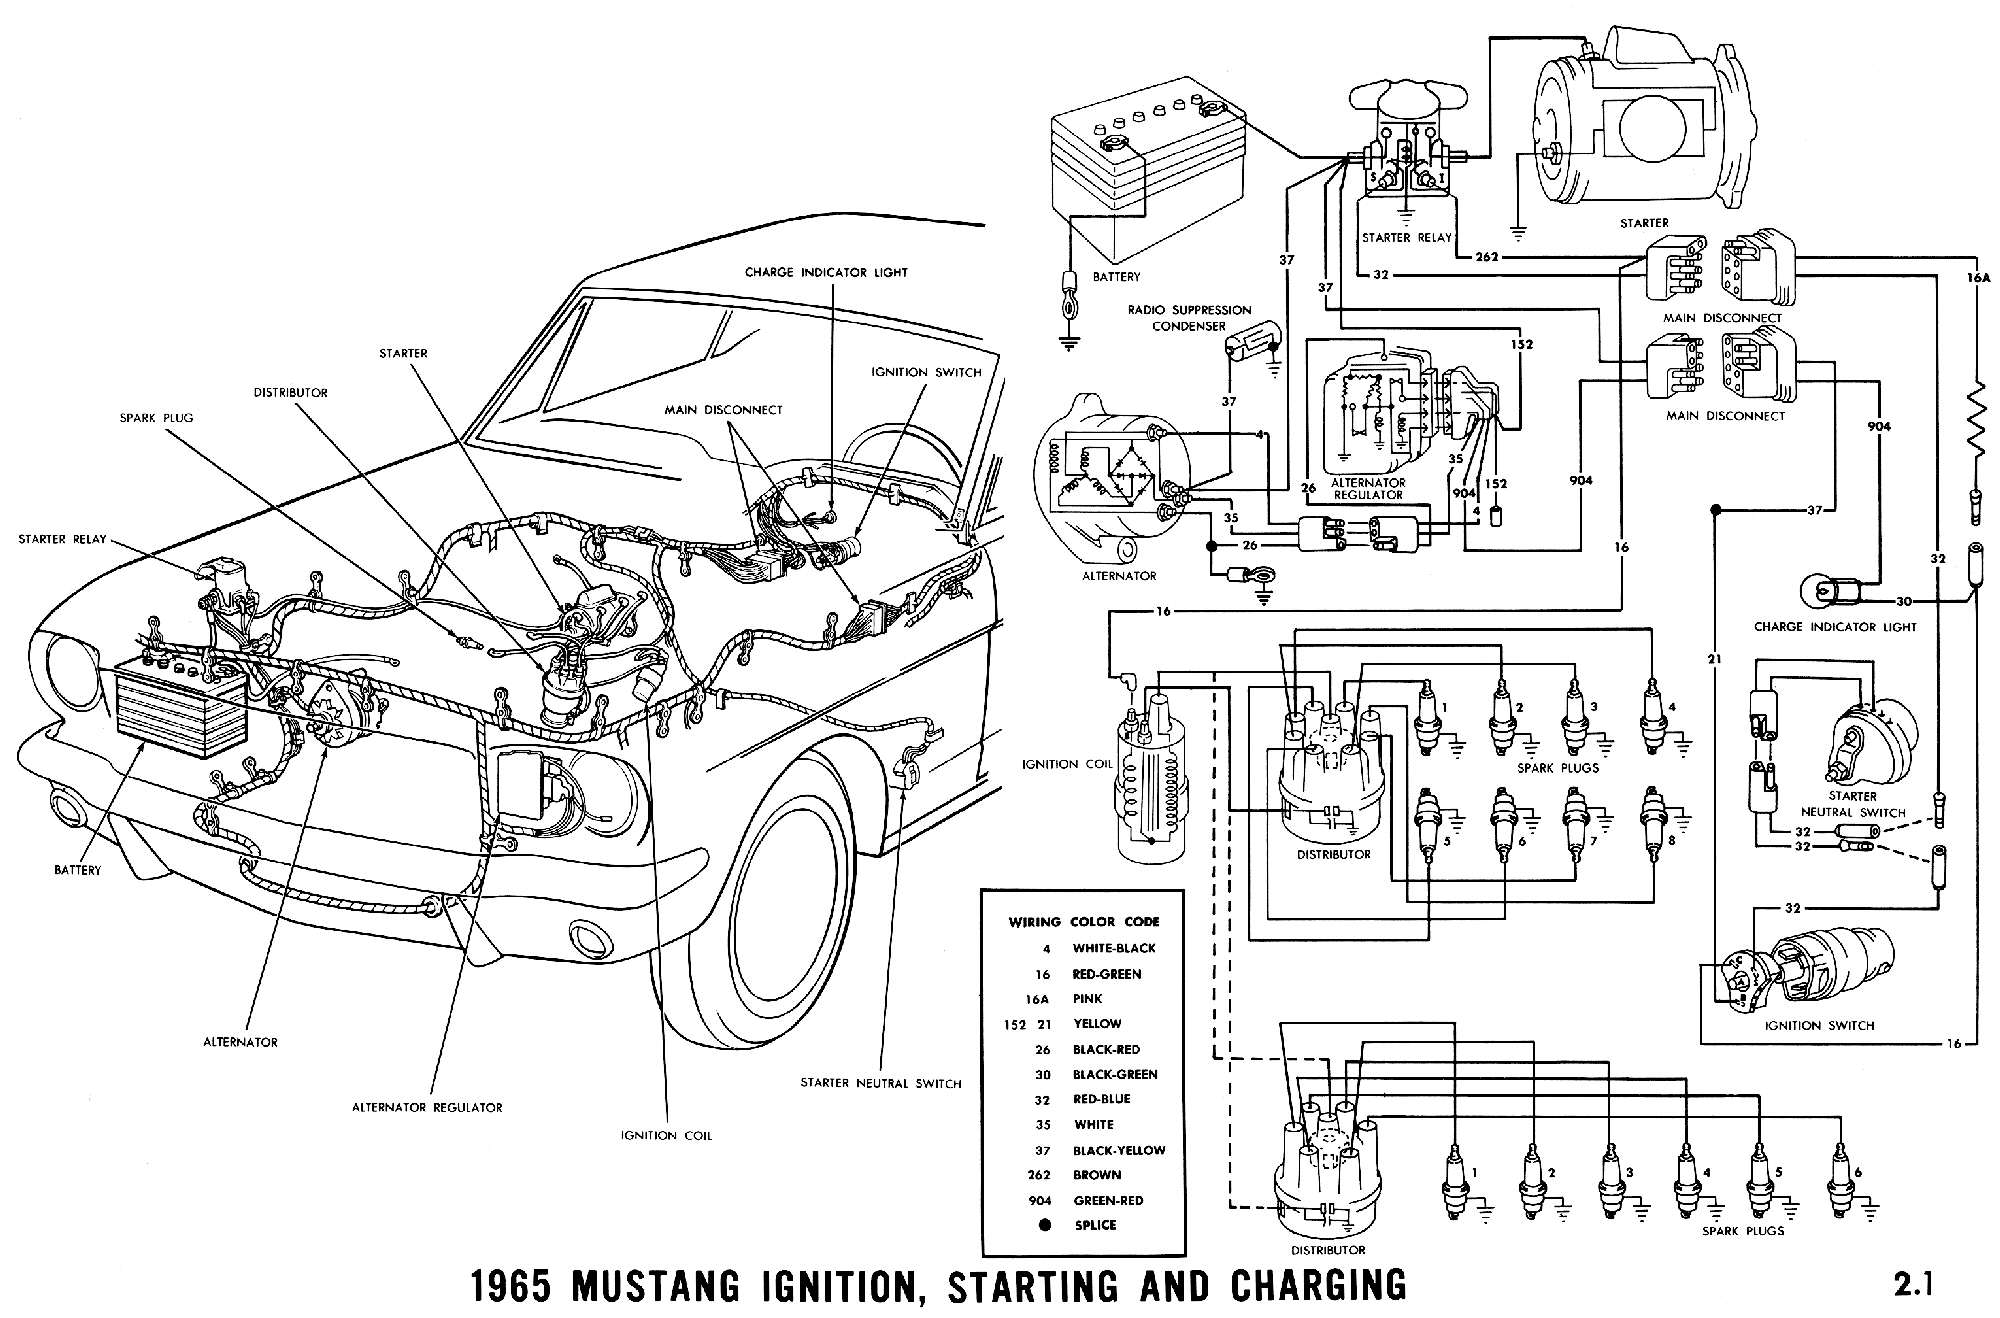 1965c 1965 mustang wiring diagrams average joe restoration 1993 suburban ignition wiring harness diagram at alyssarenee.co